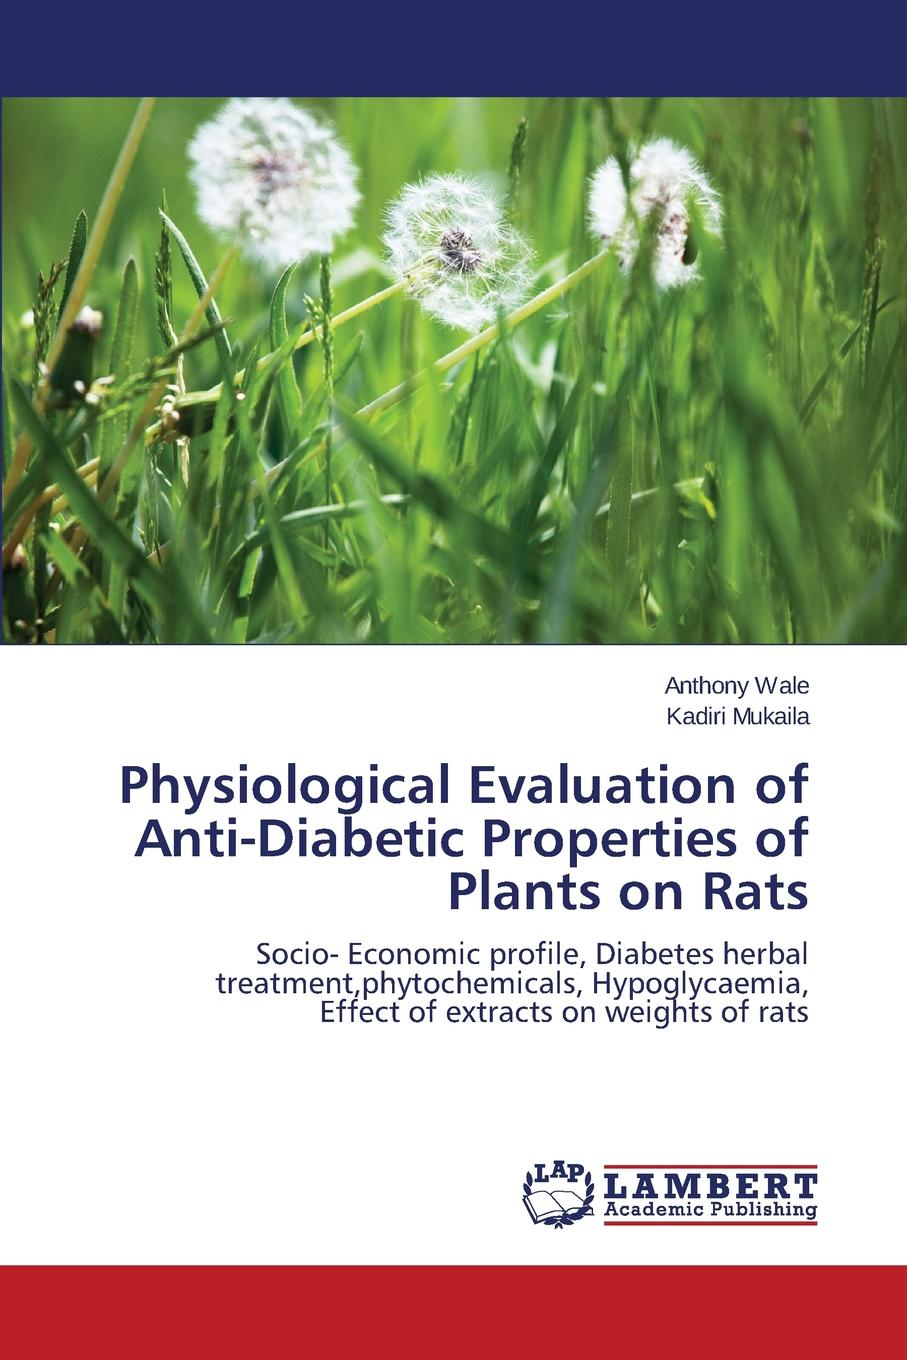 Wale Anthony, Mukaila Kadiri Physiological Evaluation of Anti-Diabetic Properties of Plants on Rats seaweed extract organic barley grass powder rhodiola root p e 100g lot